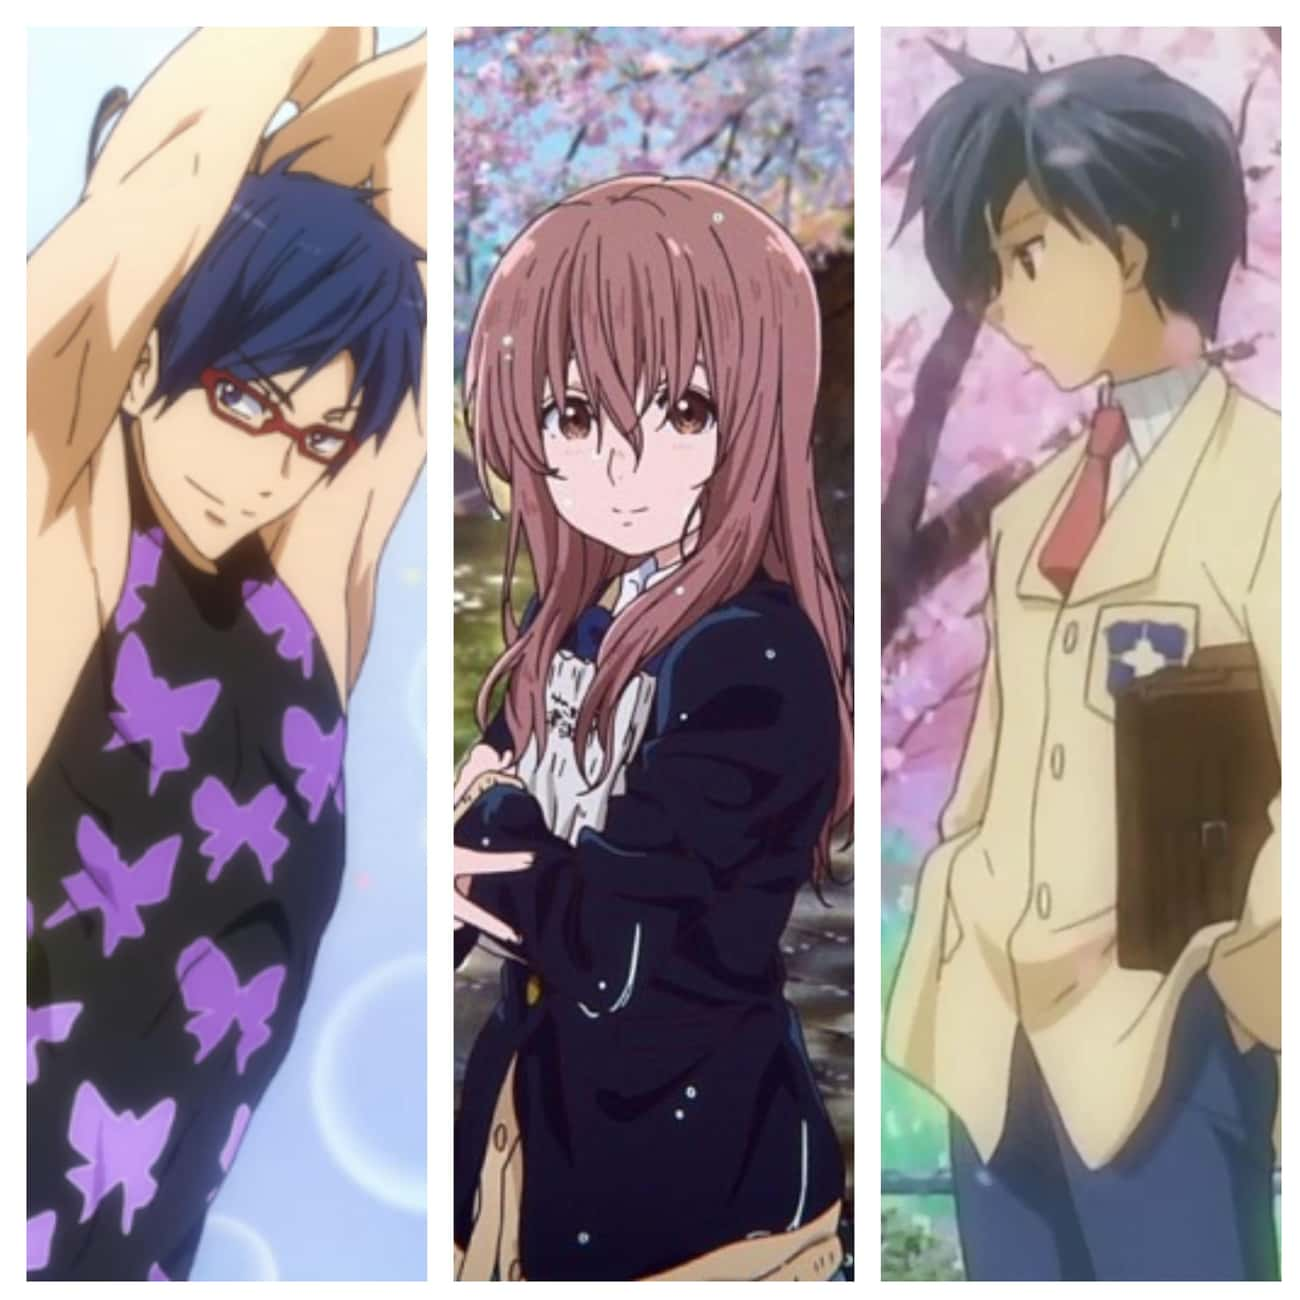 Kyoto Animation is listed (or ranked) 4 on the list The Greatest Anime Studios of All Time, Ranked